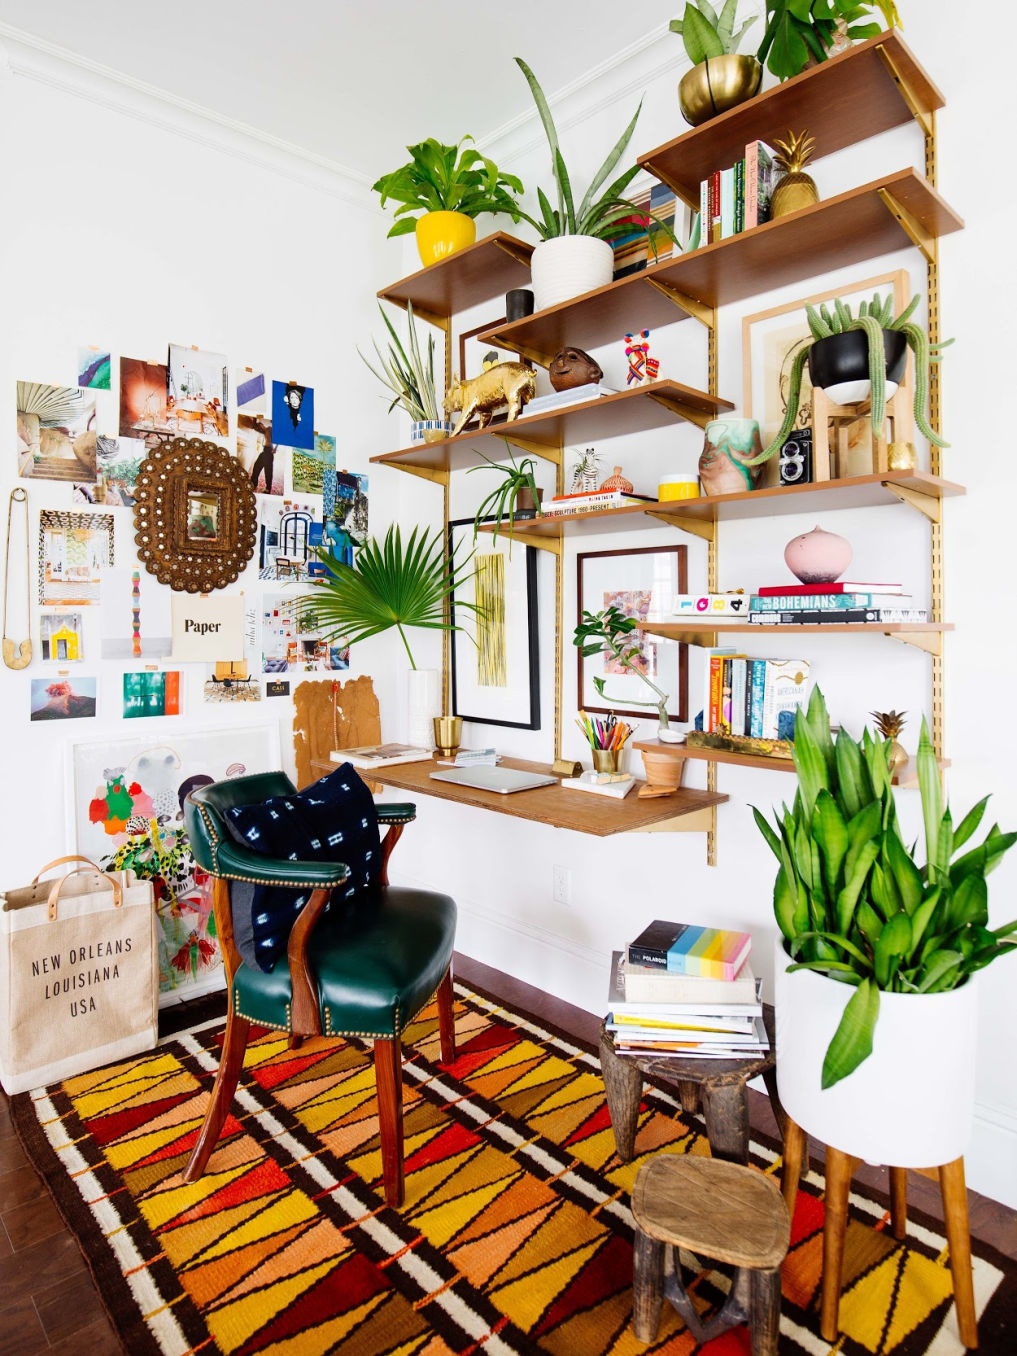 Turn an unused corner into a home office with open shelves and an inspiration board #homeoffice #office #smallspaces #colorful #bohodecor #openshelves #desk #vintagedecor #vintagemodern